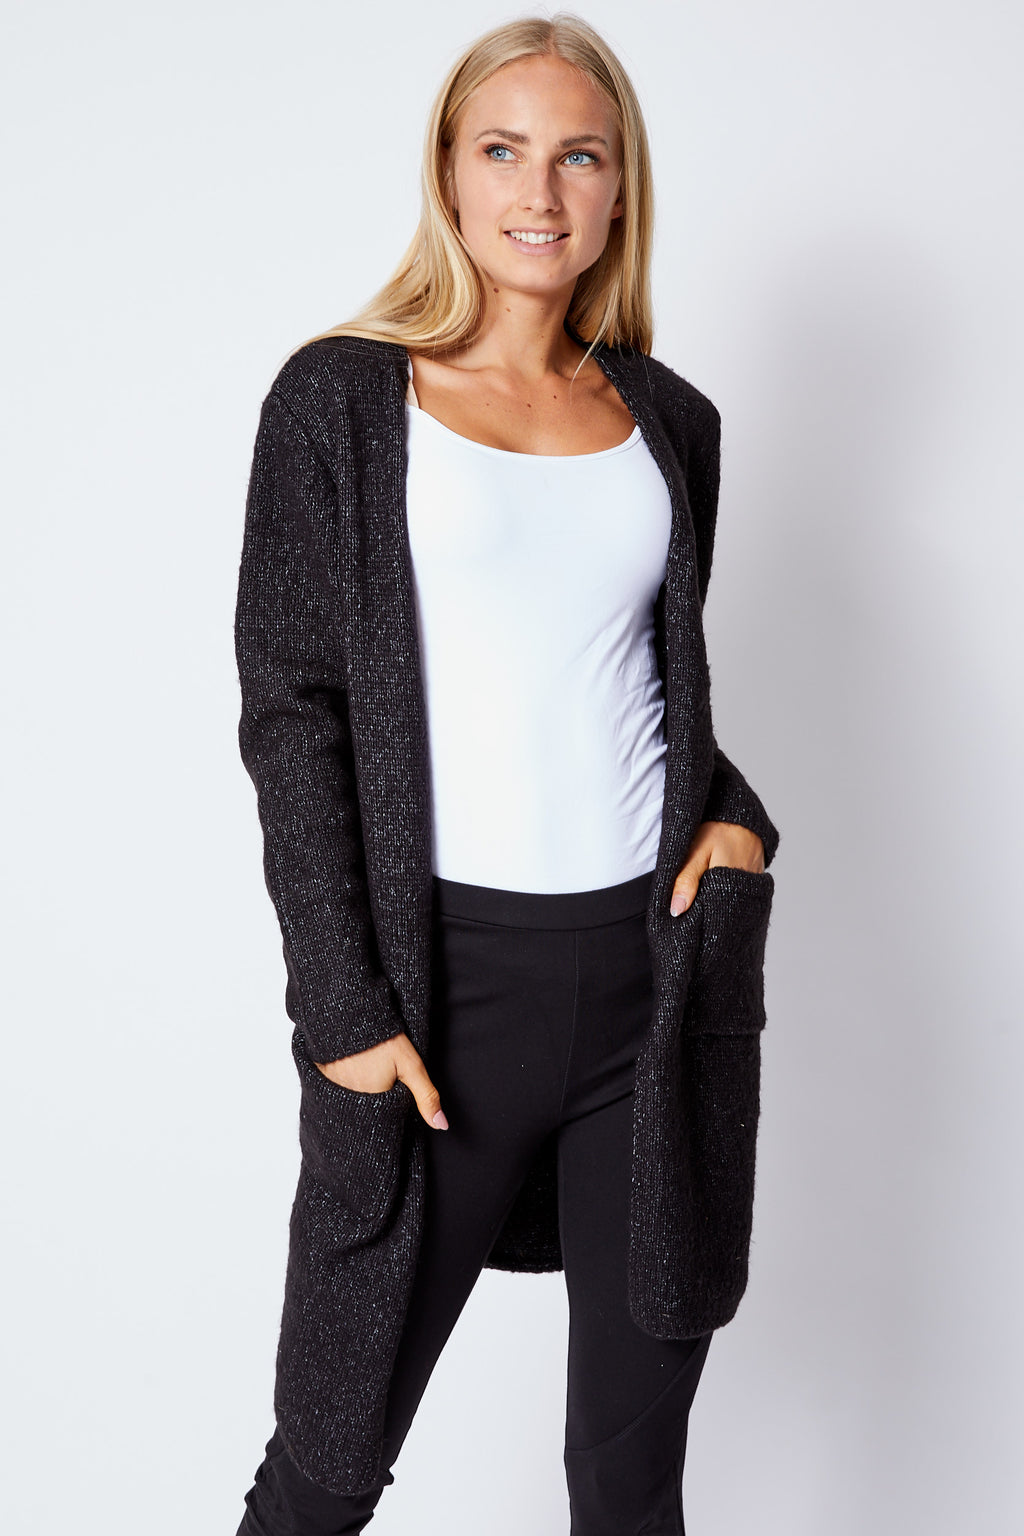 Black Tweed Sweater - Jacqueline B Clothing